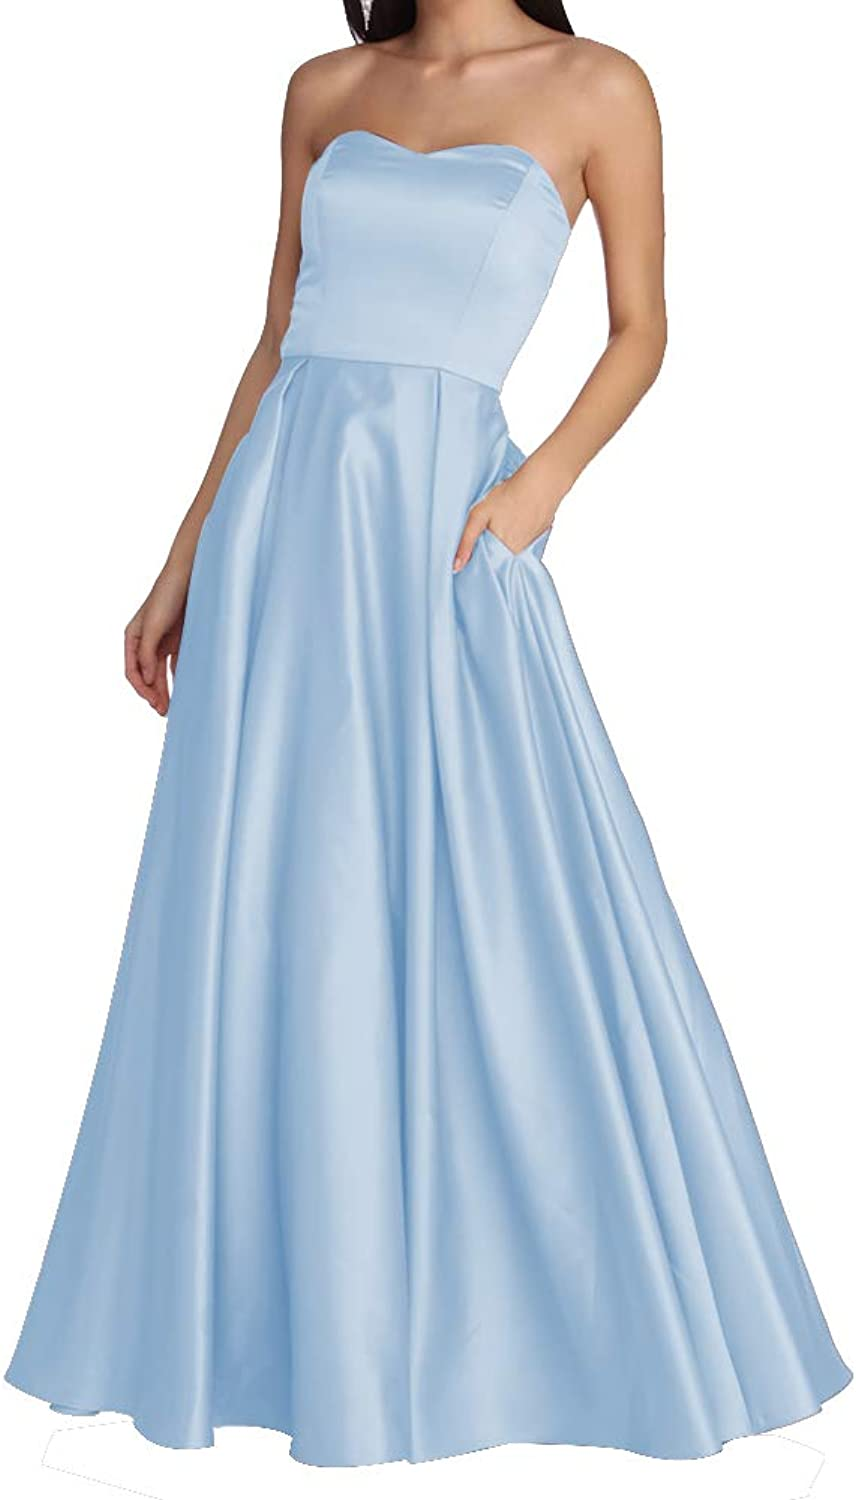 Women's Strapless Long Prom Dresses A Line Satin Homecoming Party Gowns with Pockets BD040